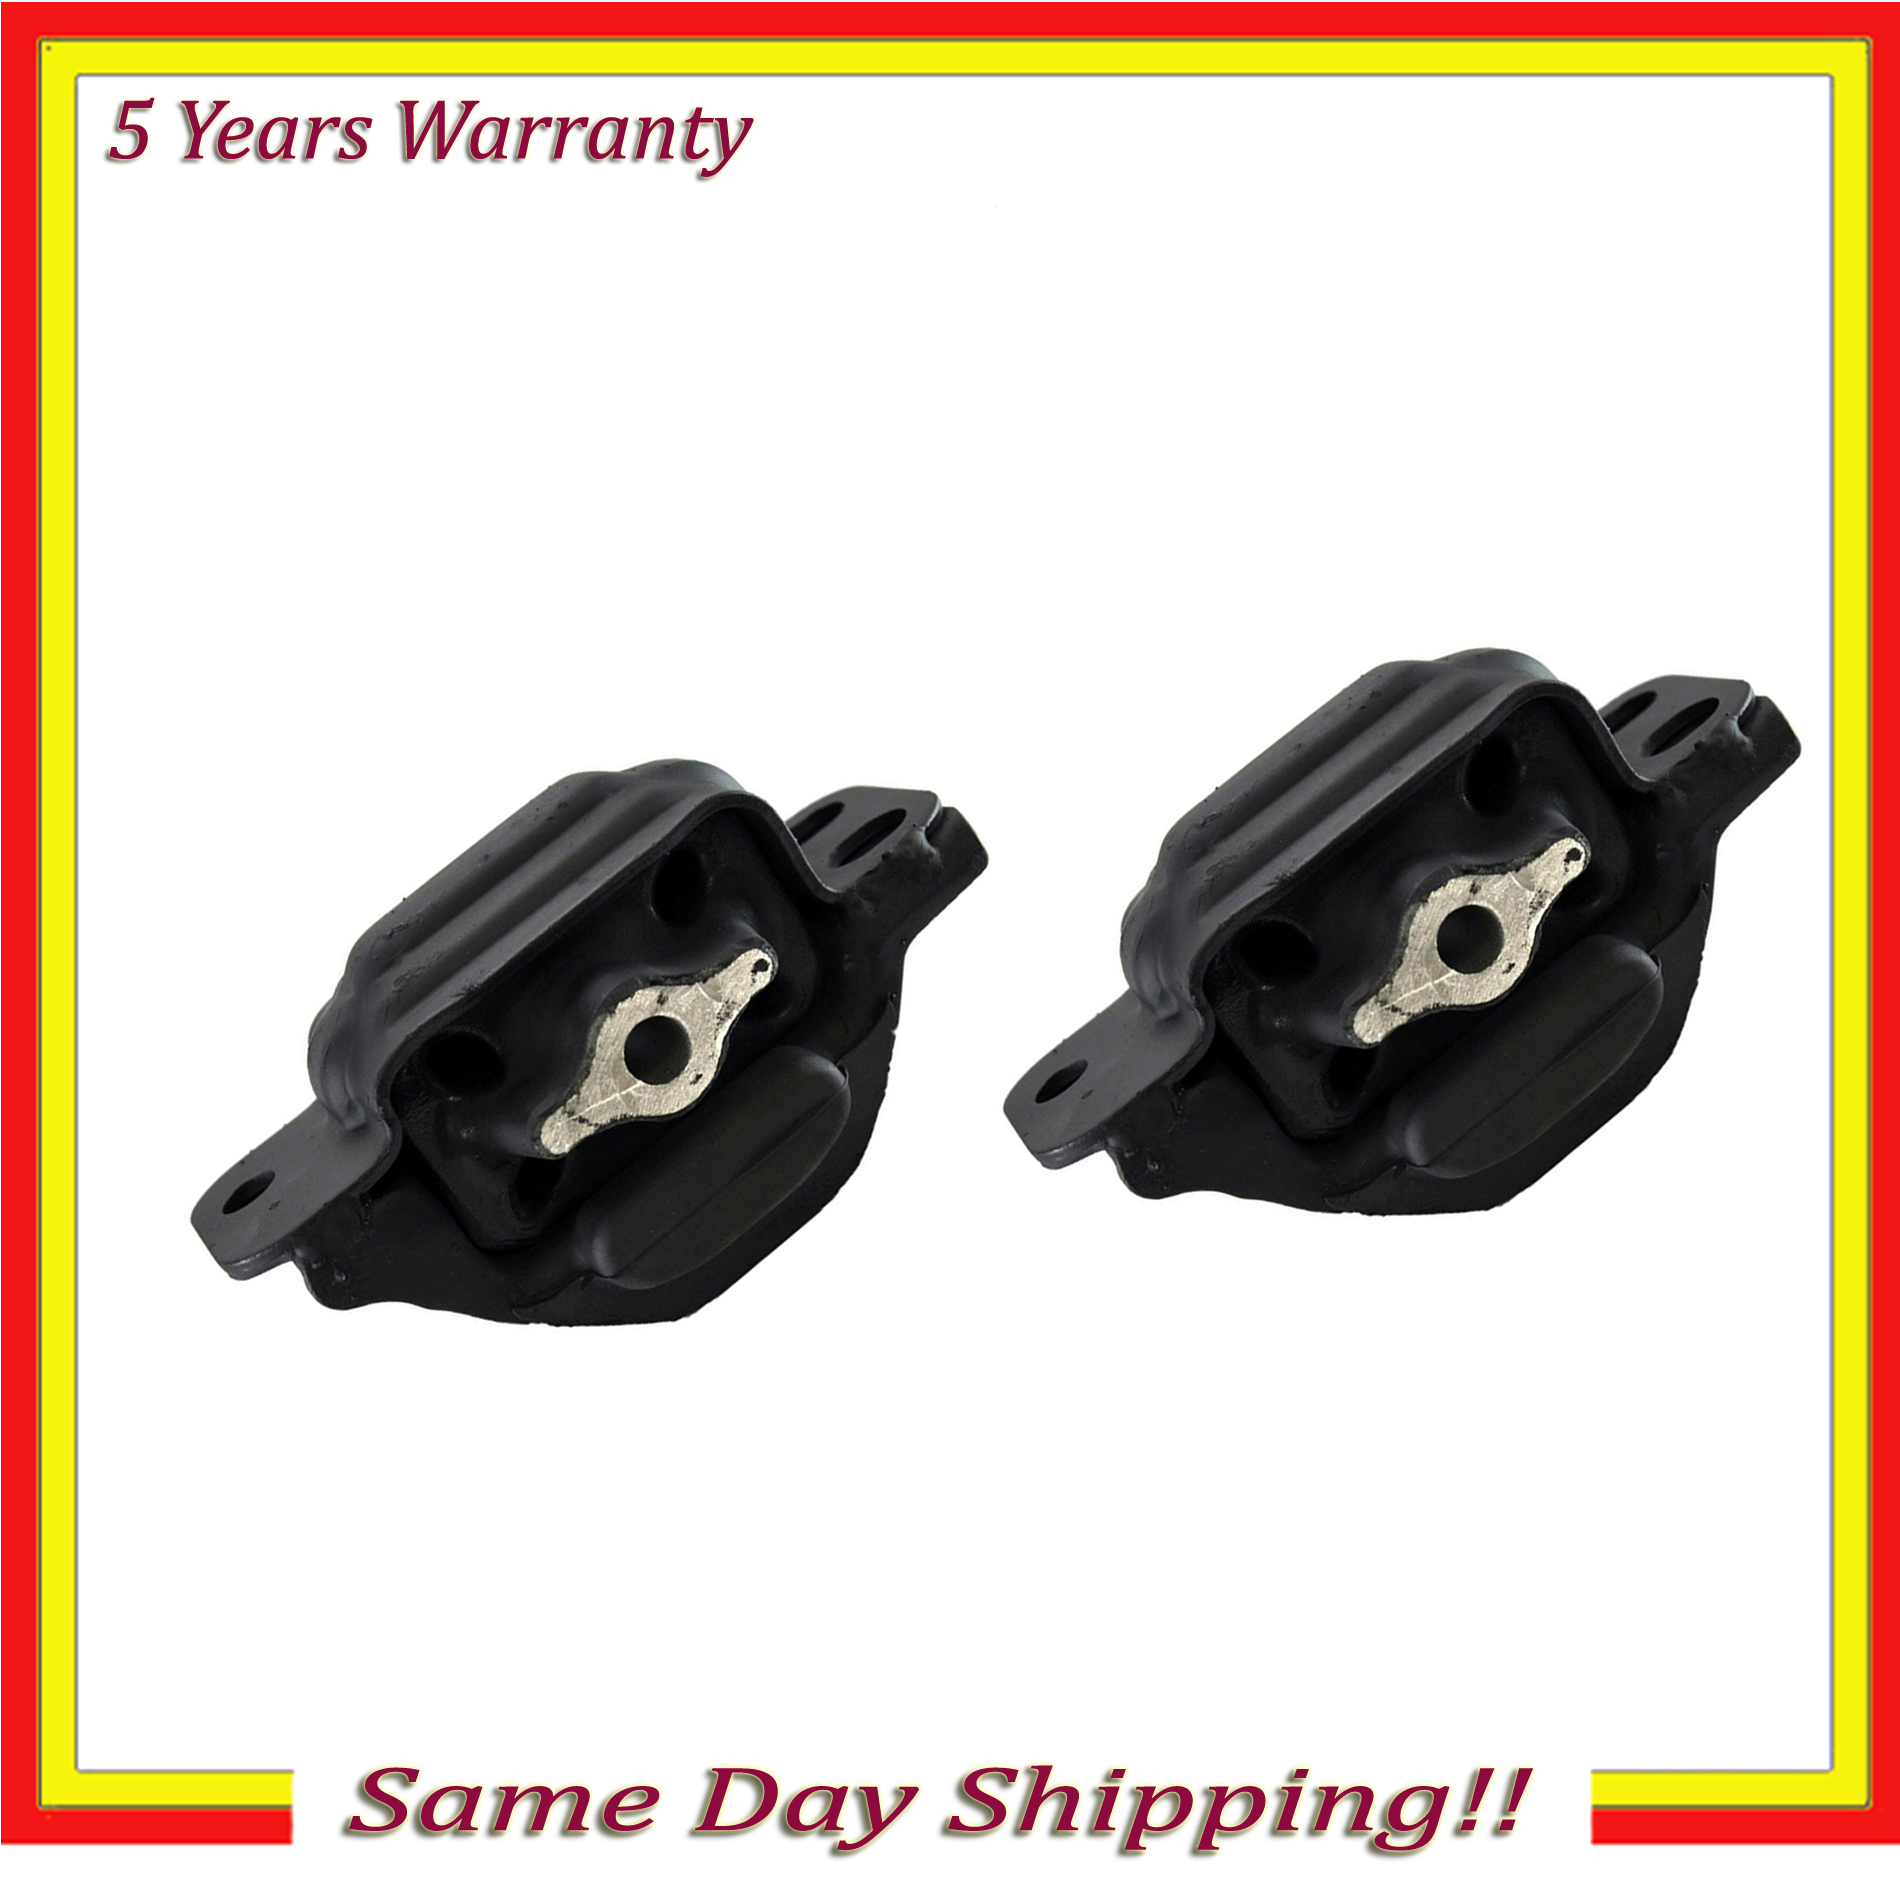 Engine Motor Mount For 2003-2007 Dodge RAM 2500 3500 5.7//5.9//8.0L 5410*2 Set 2